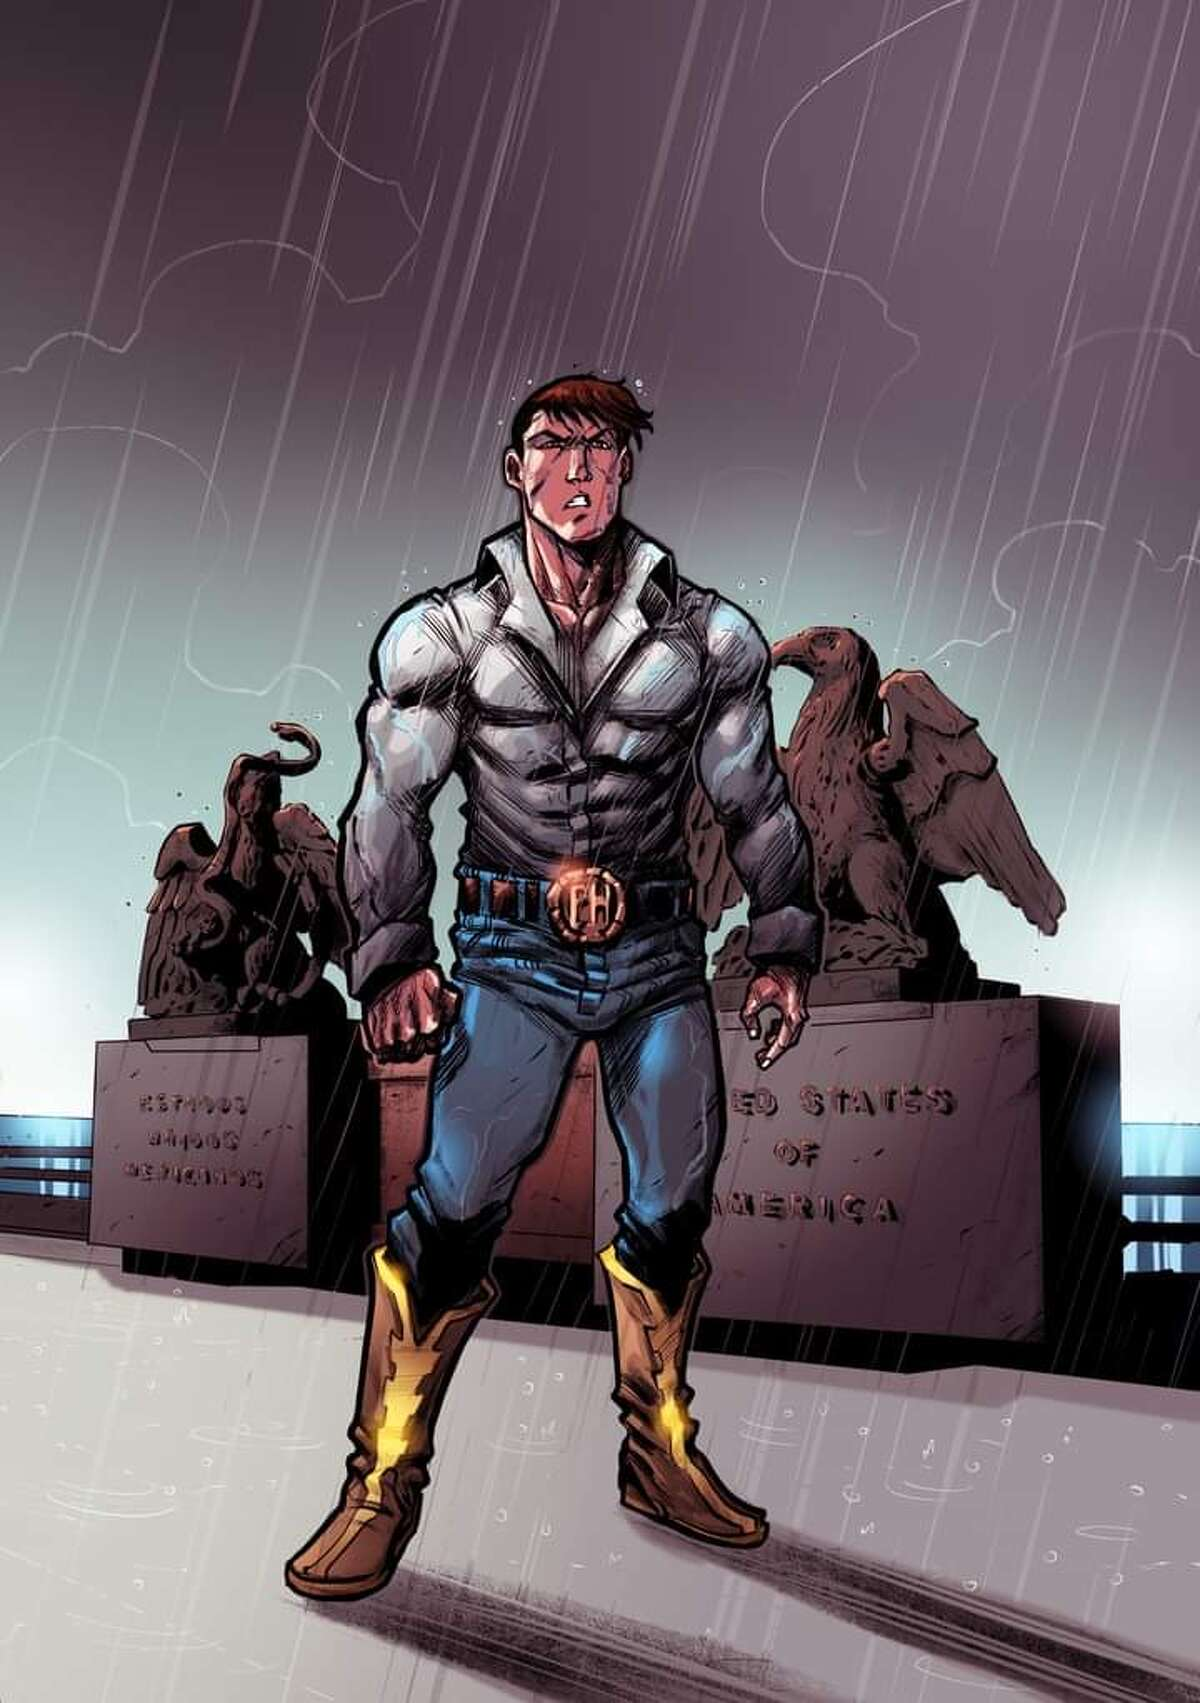 Artwork from Rodriguez's comic book